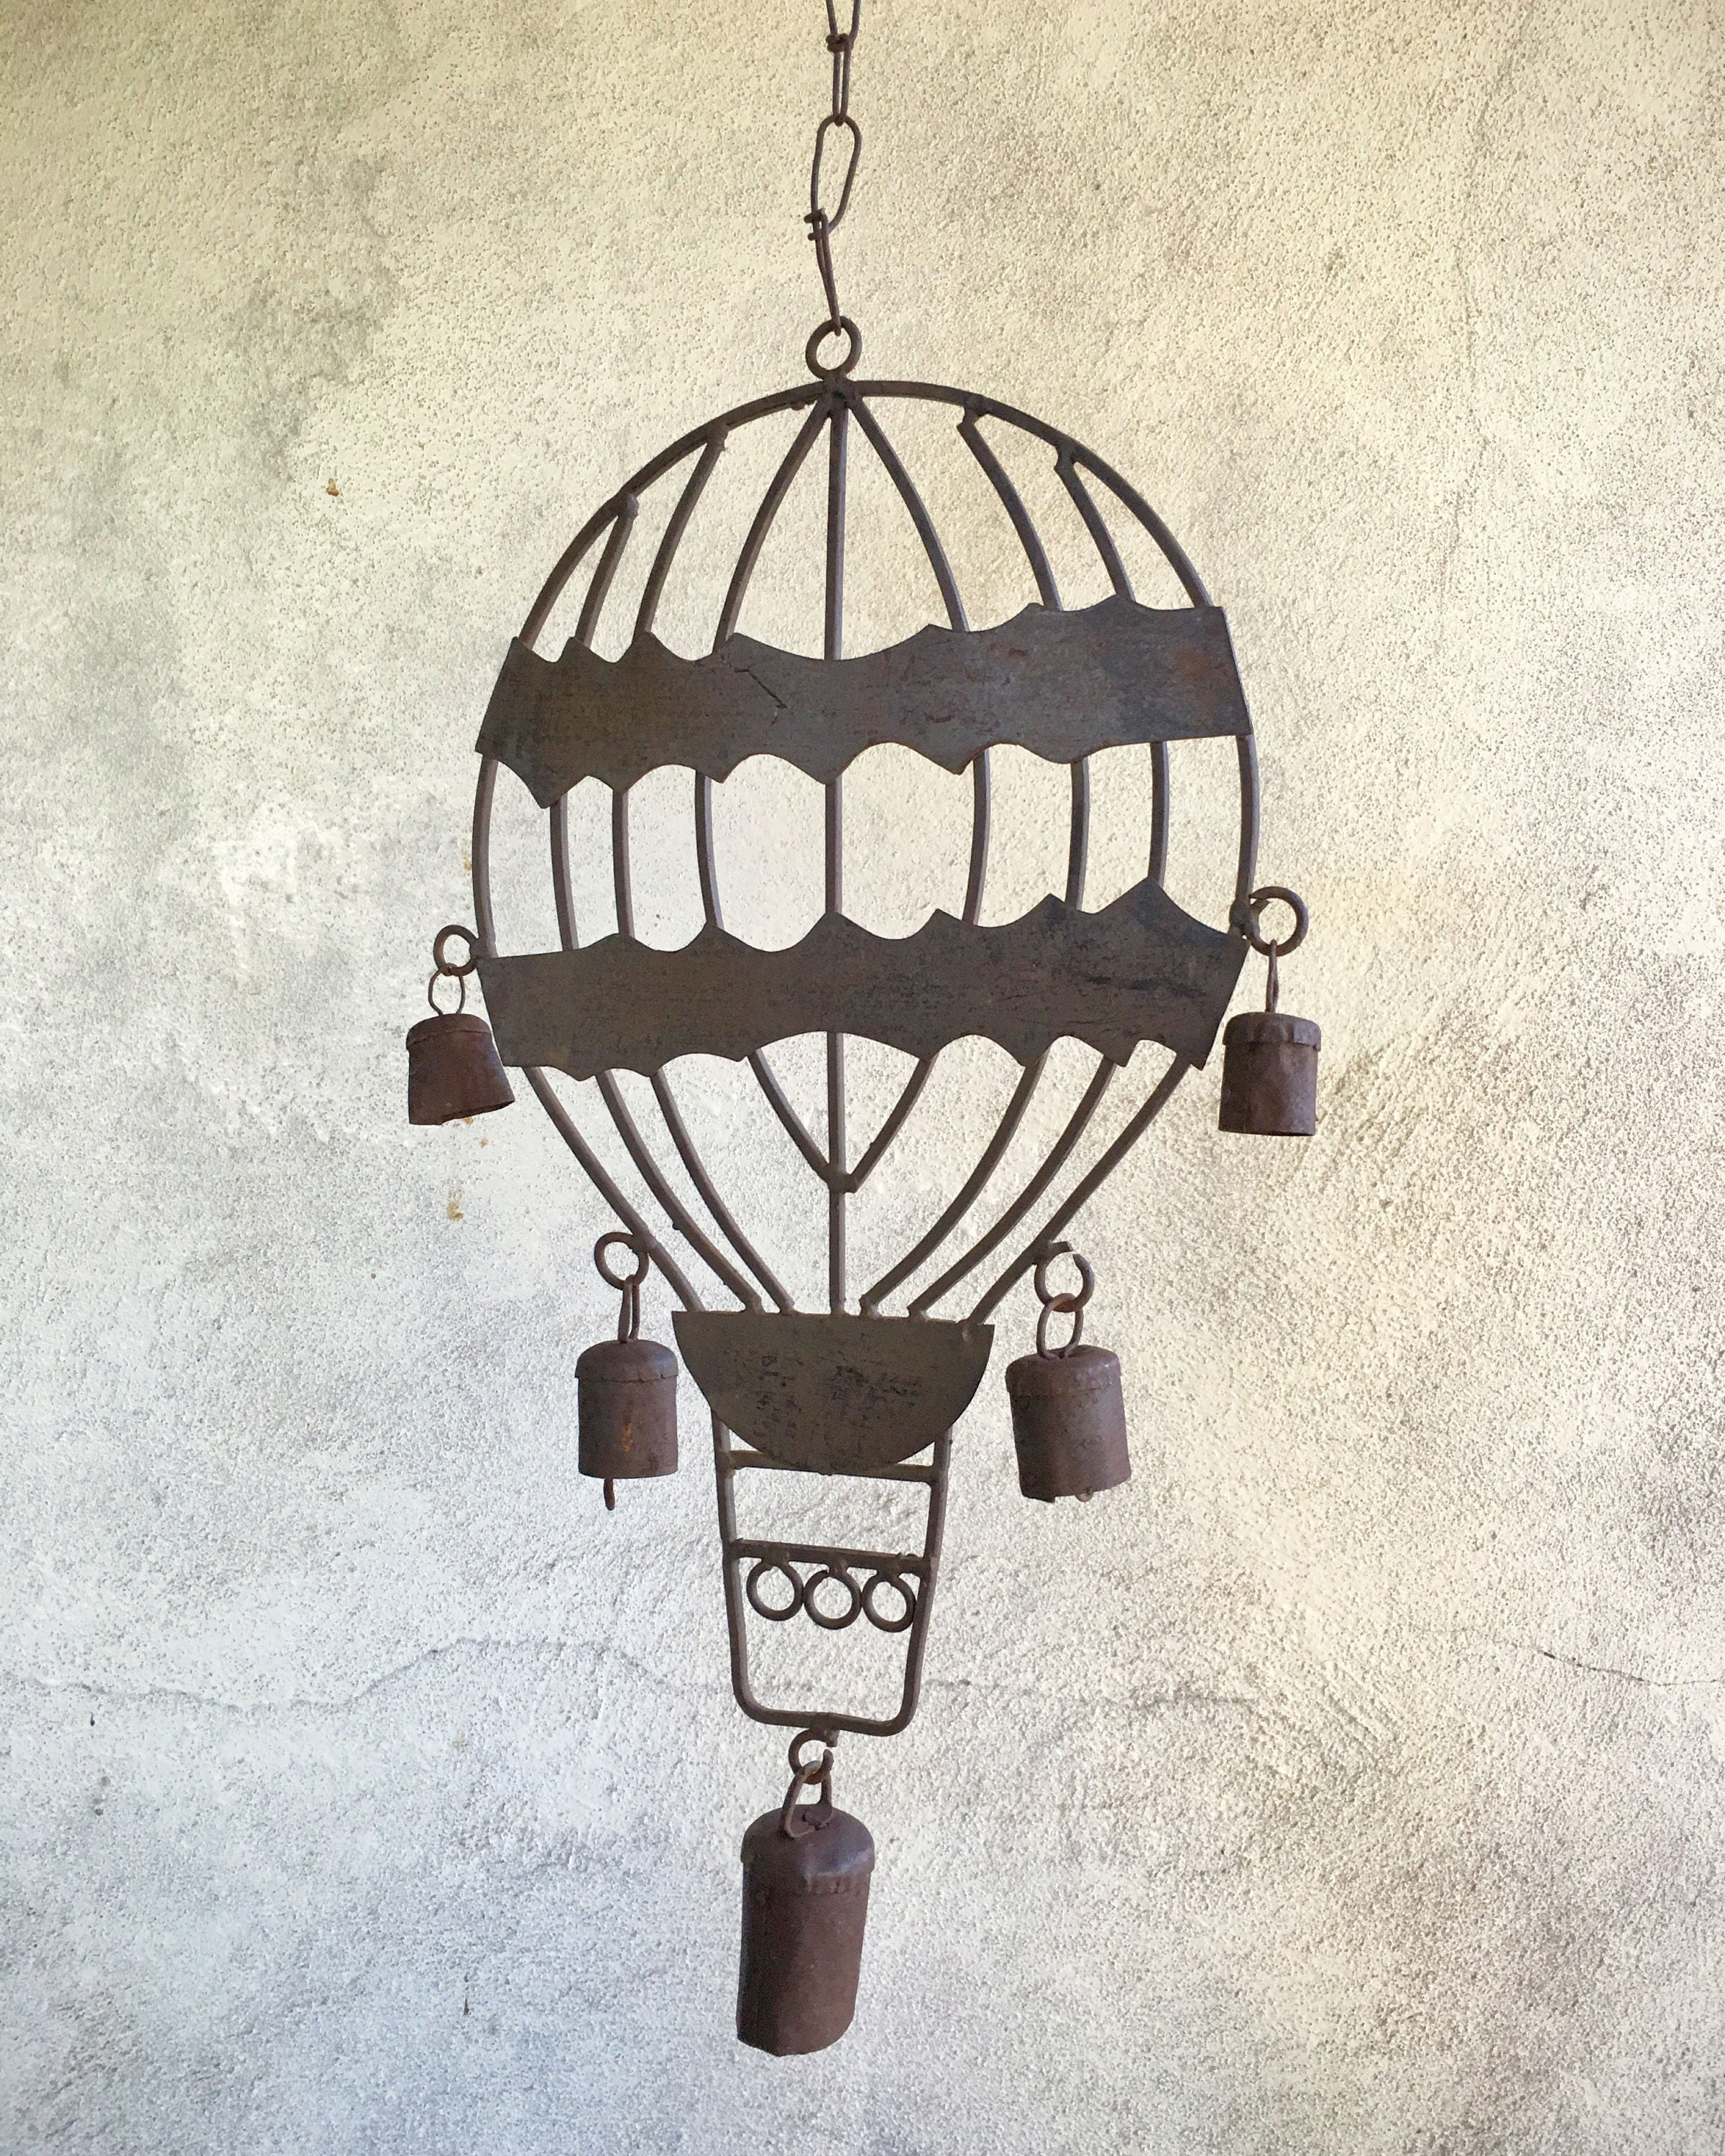 Vintage Rustic Metal Hot Air Balloon Wind Chime Old Rusty Weathered